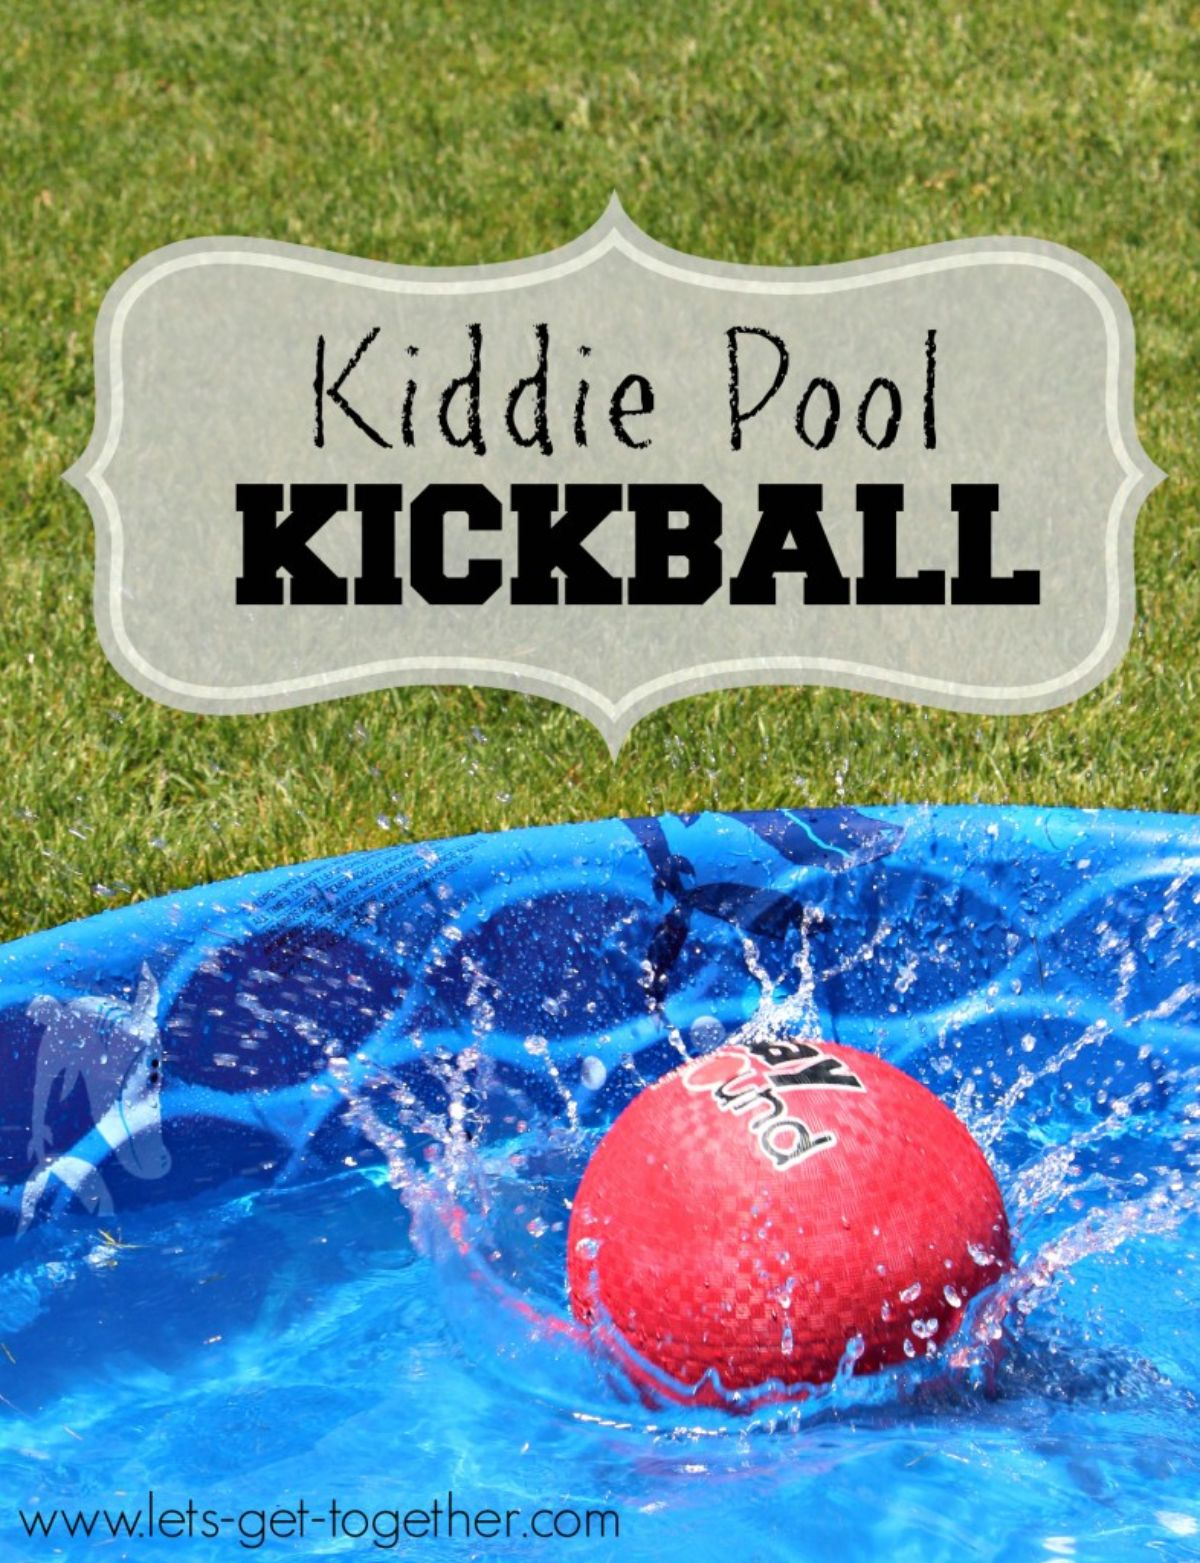 """The text reads """"Kiddie pool kickball"""" the iamge is of a blue paddling pool with a red ball splashing into the water"""